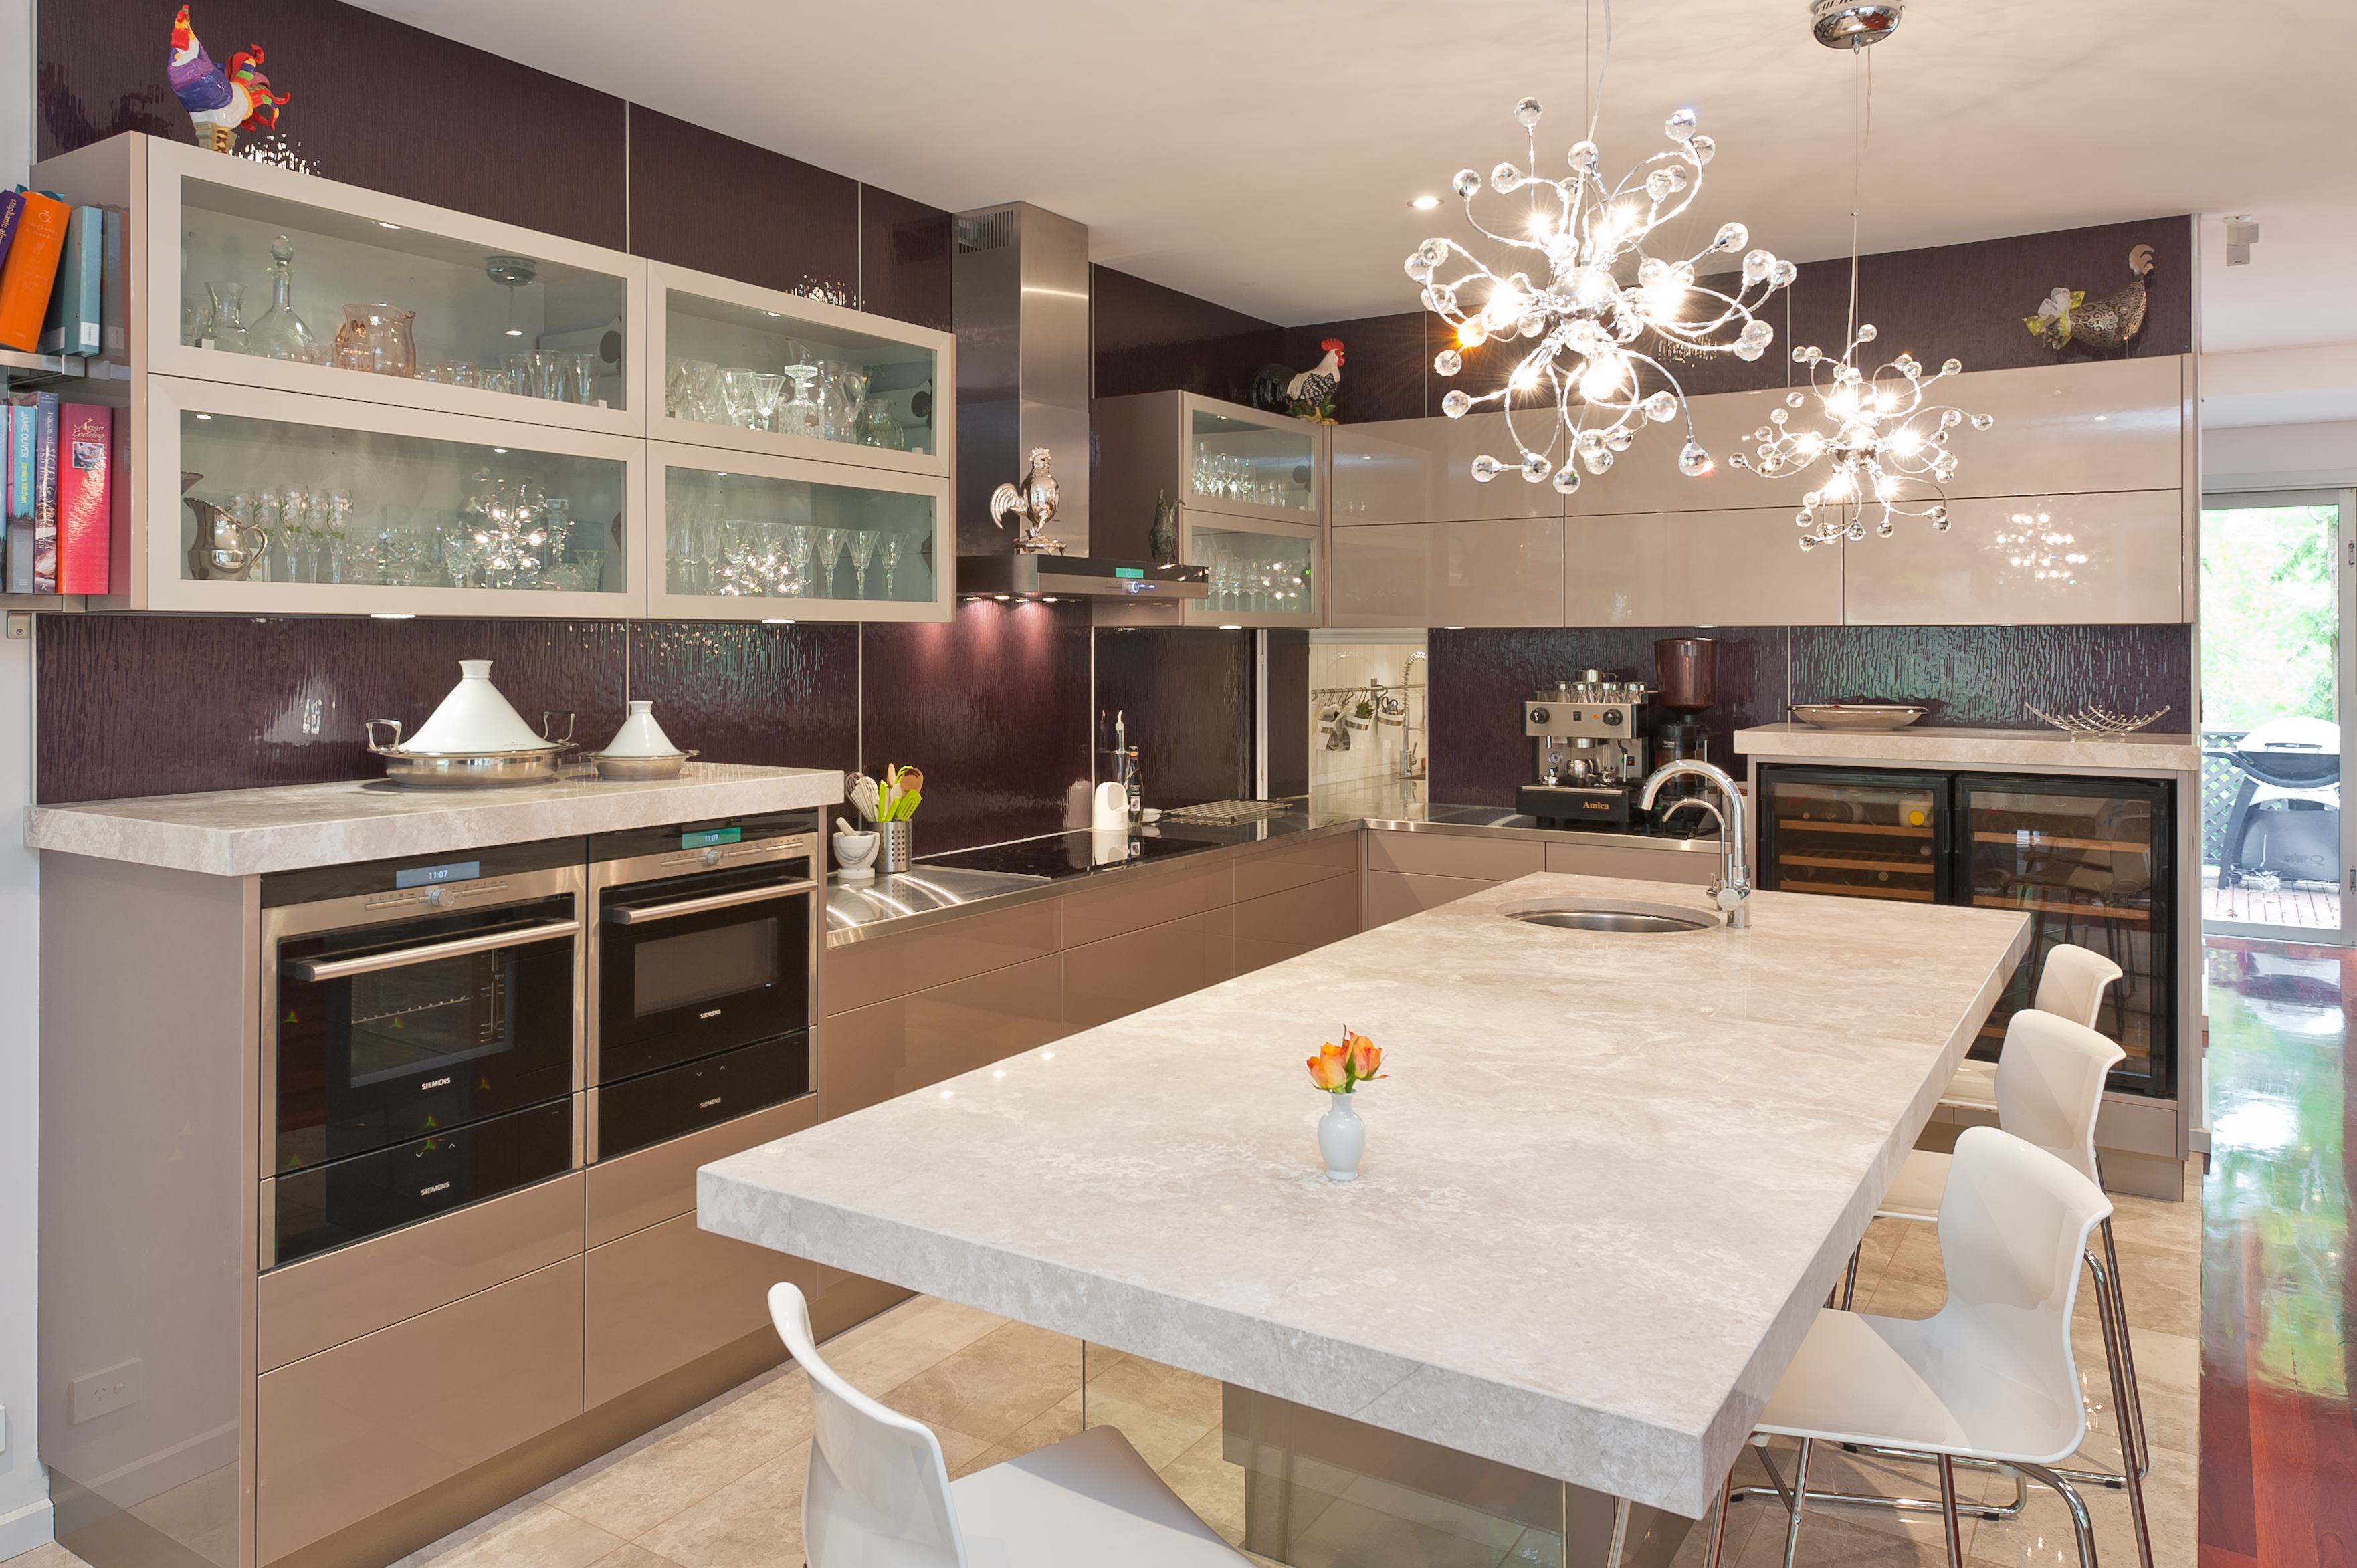 Innovative Kitchen: Perfect For Entertaining